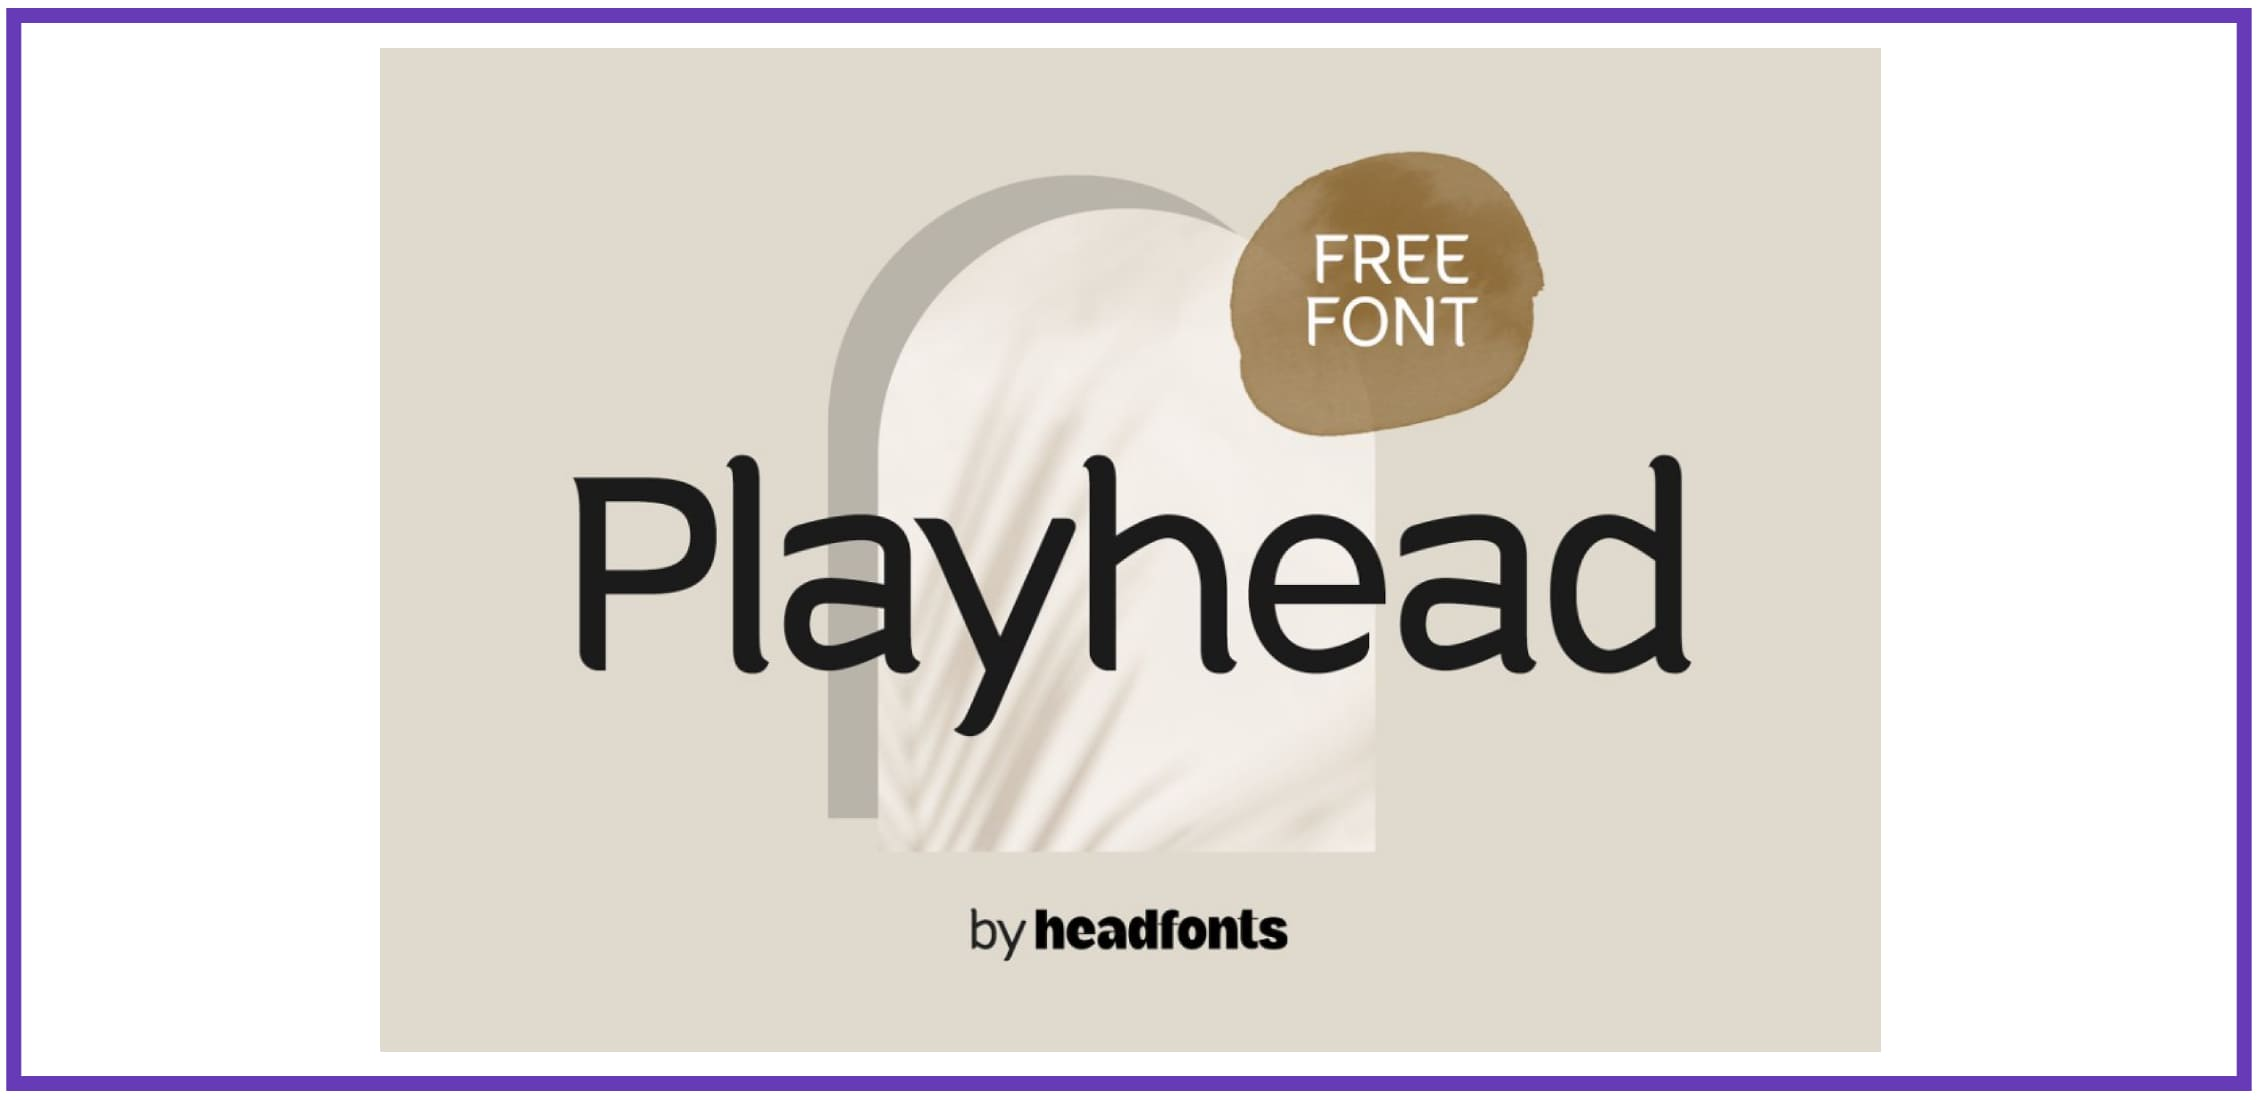 Playhead playful font By Headfonts. Best Industrial Fonts.